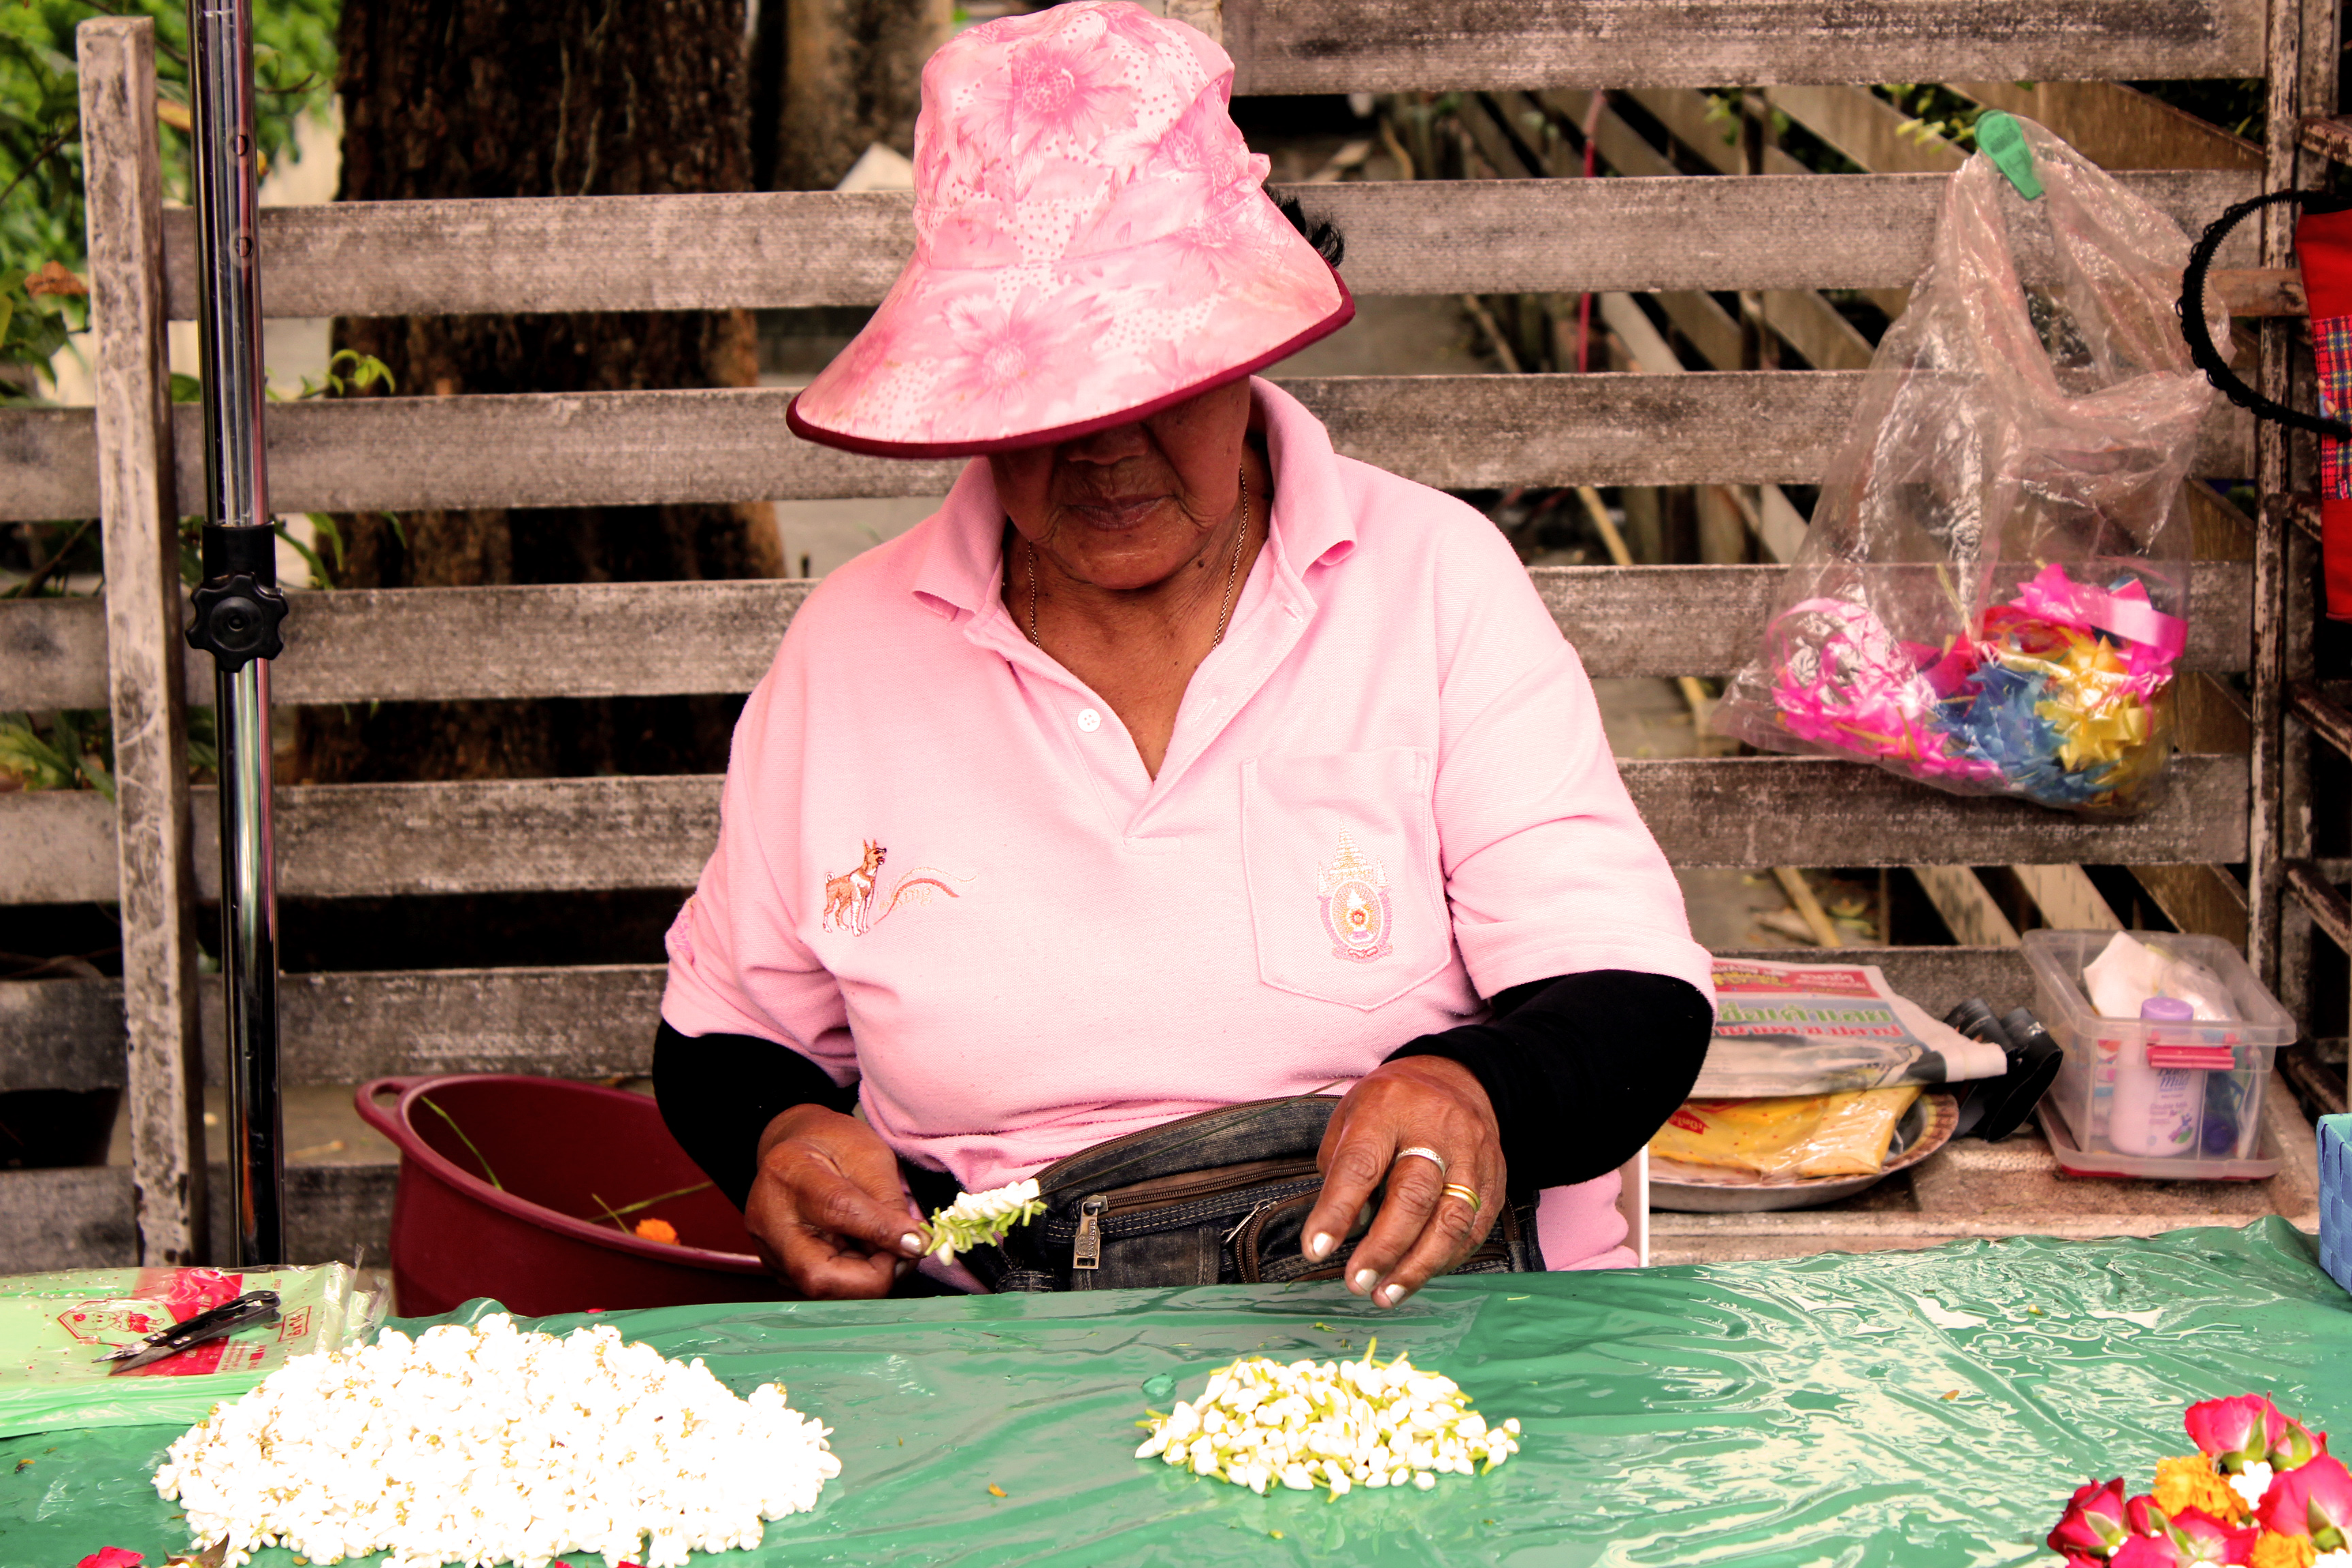 Lady making flower neckless